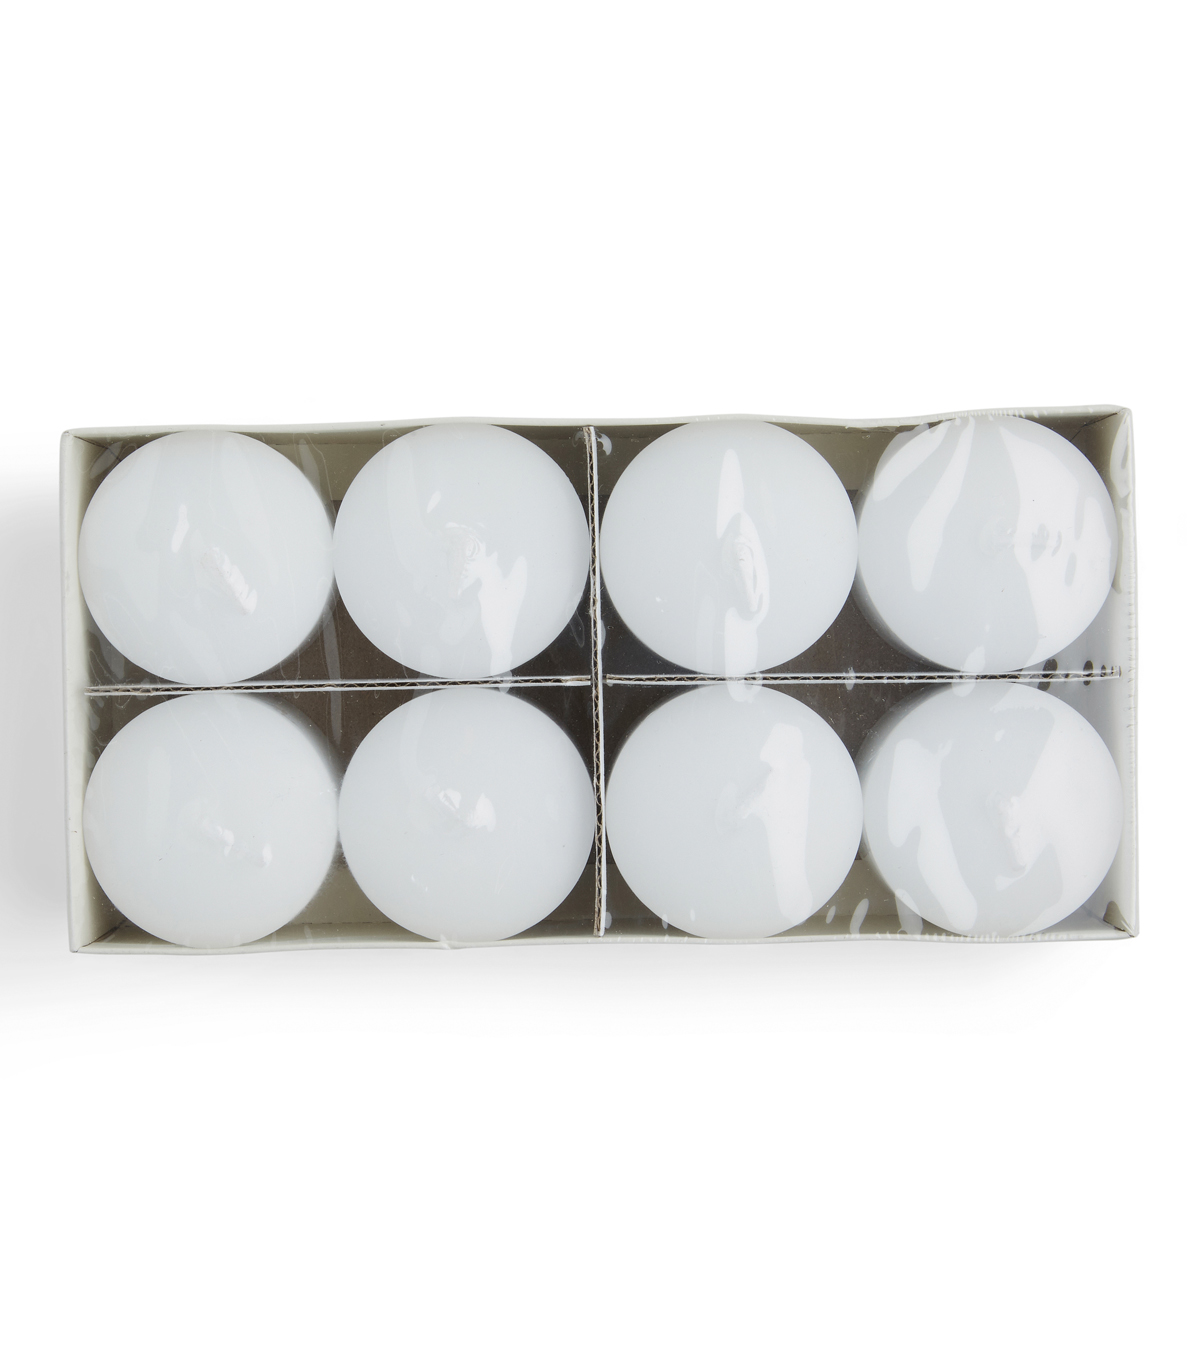 Hudson 43 Candle & Light Collection 8pk 2\u0022 Unscented Pillar Candles-White